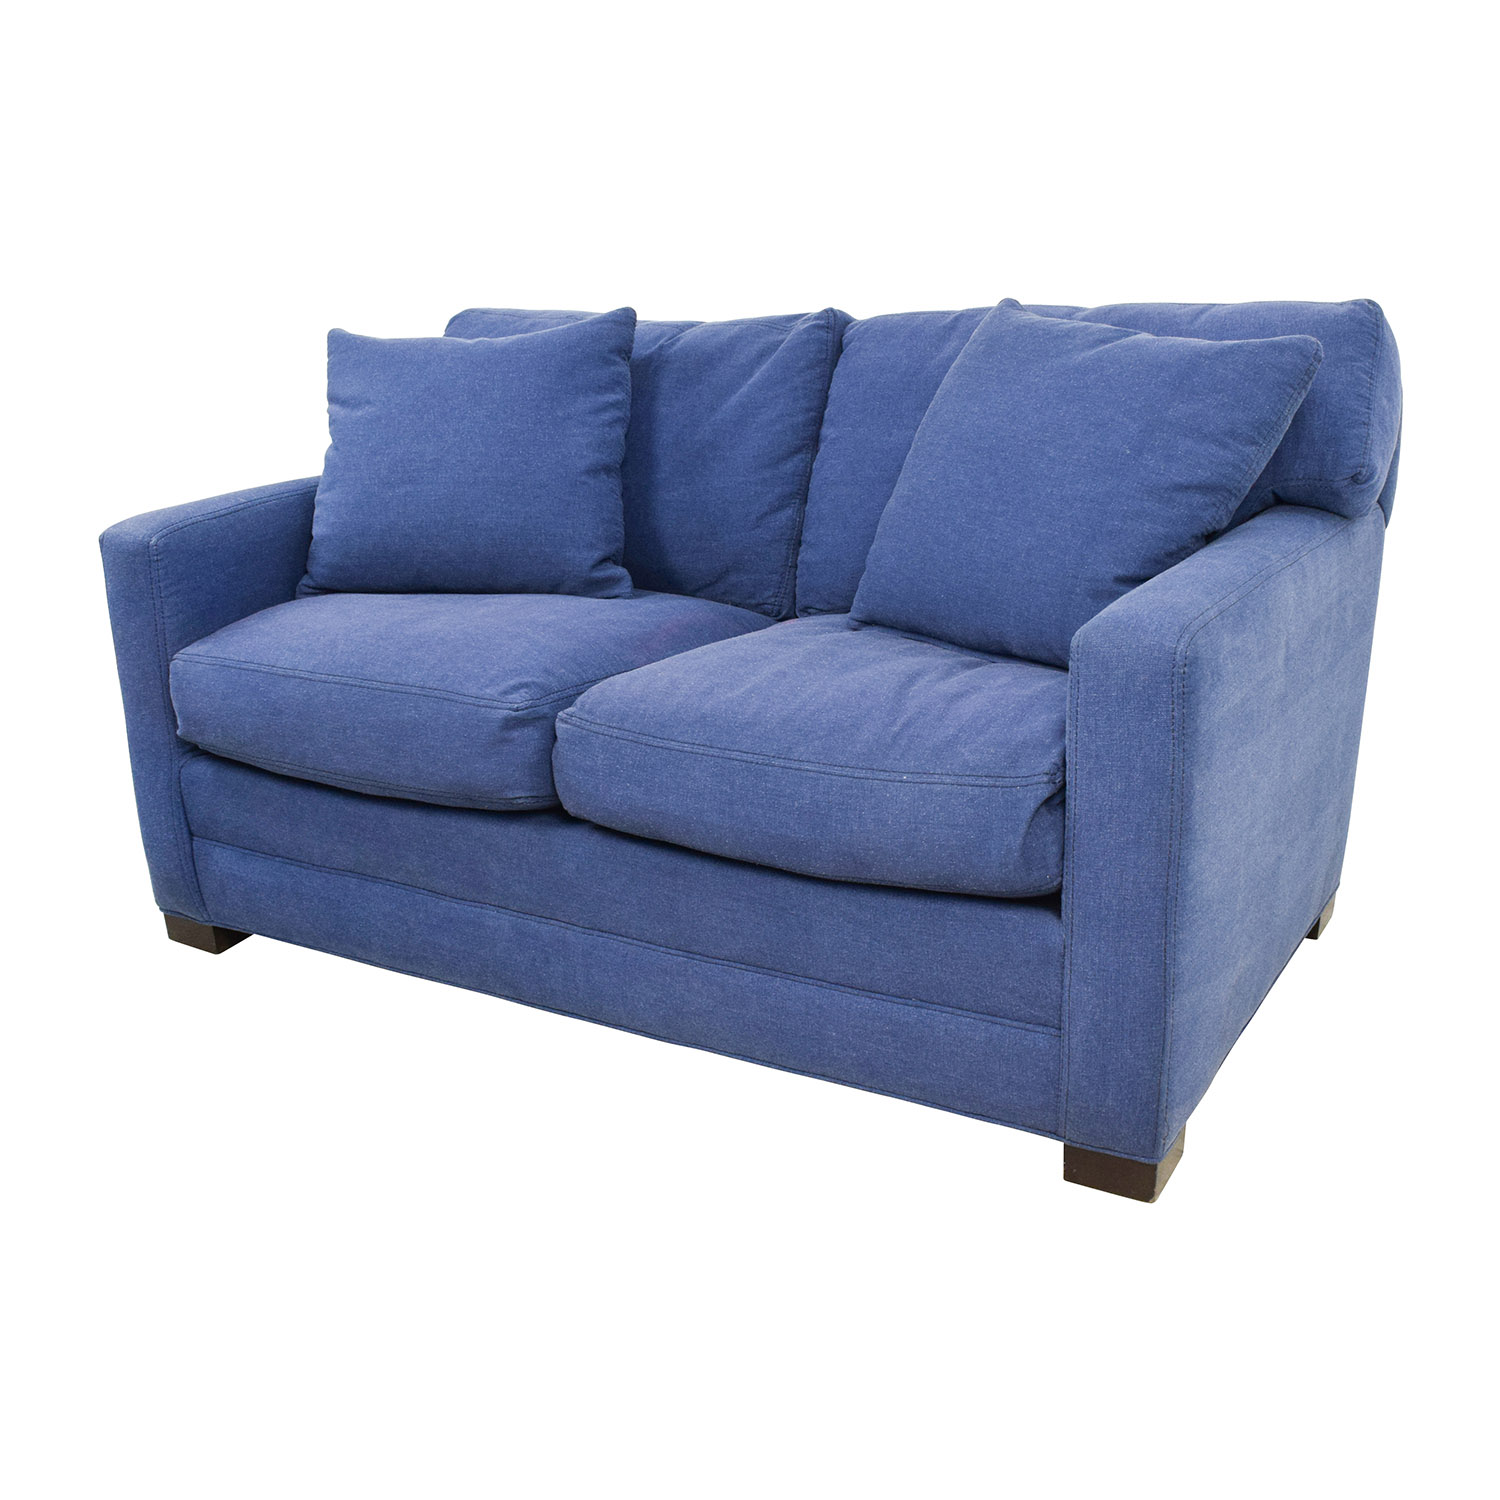 79 Off Lee Industries Lee Industries Denim Blue Loveseat Sofas